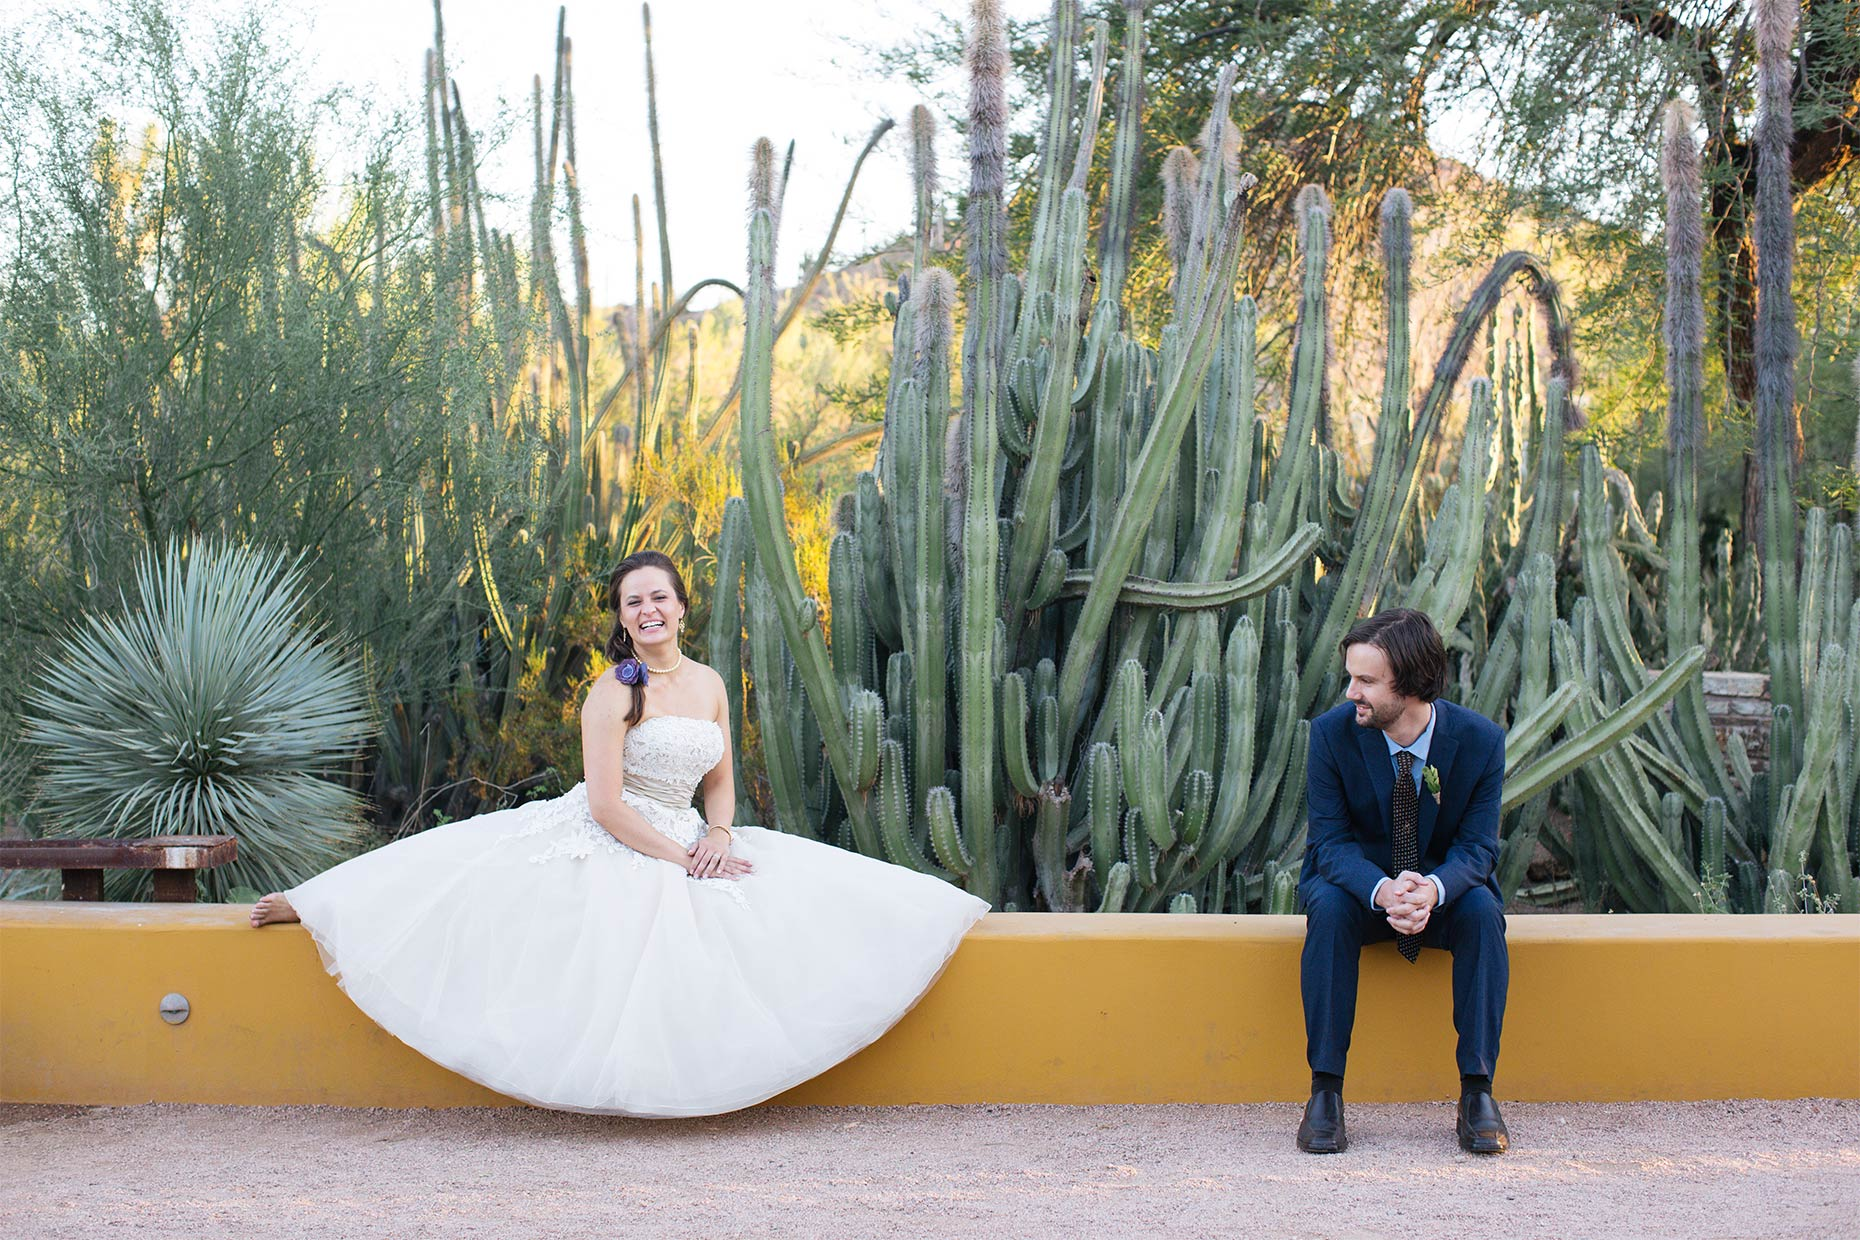 destination wedding Pheonix AZ omaha wedding photographer027